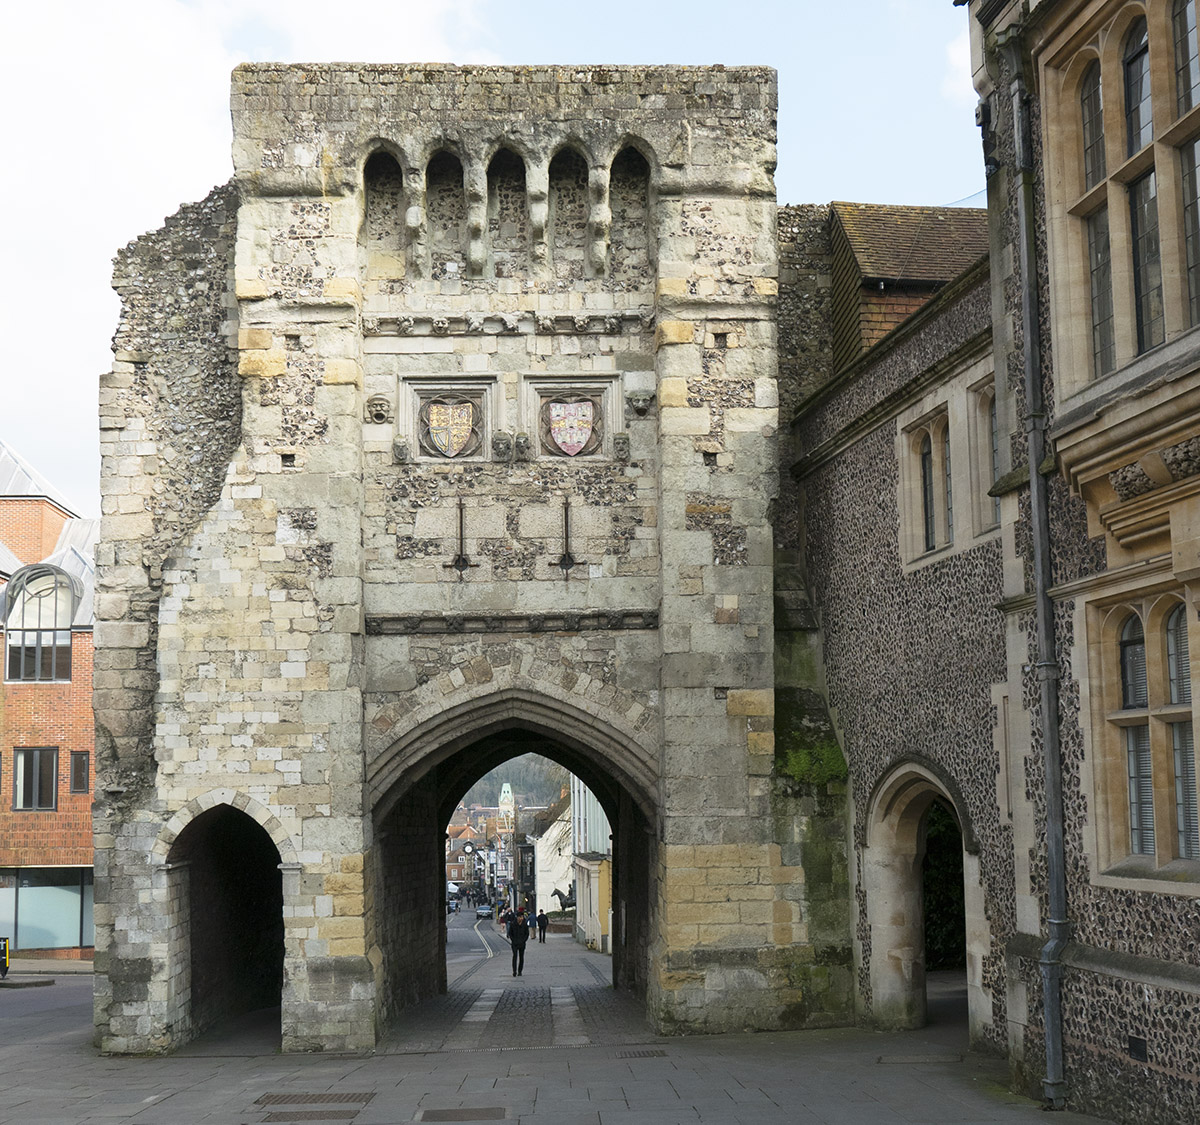 The Westgate is the last remaining mediaeval gate into Winchester.